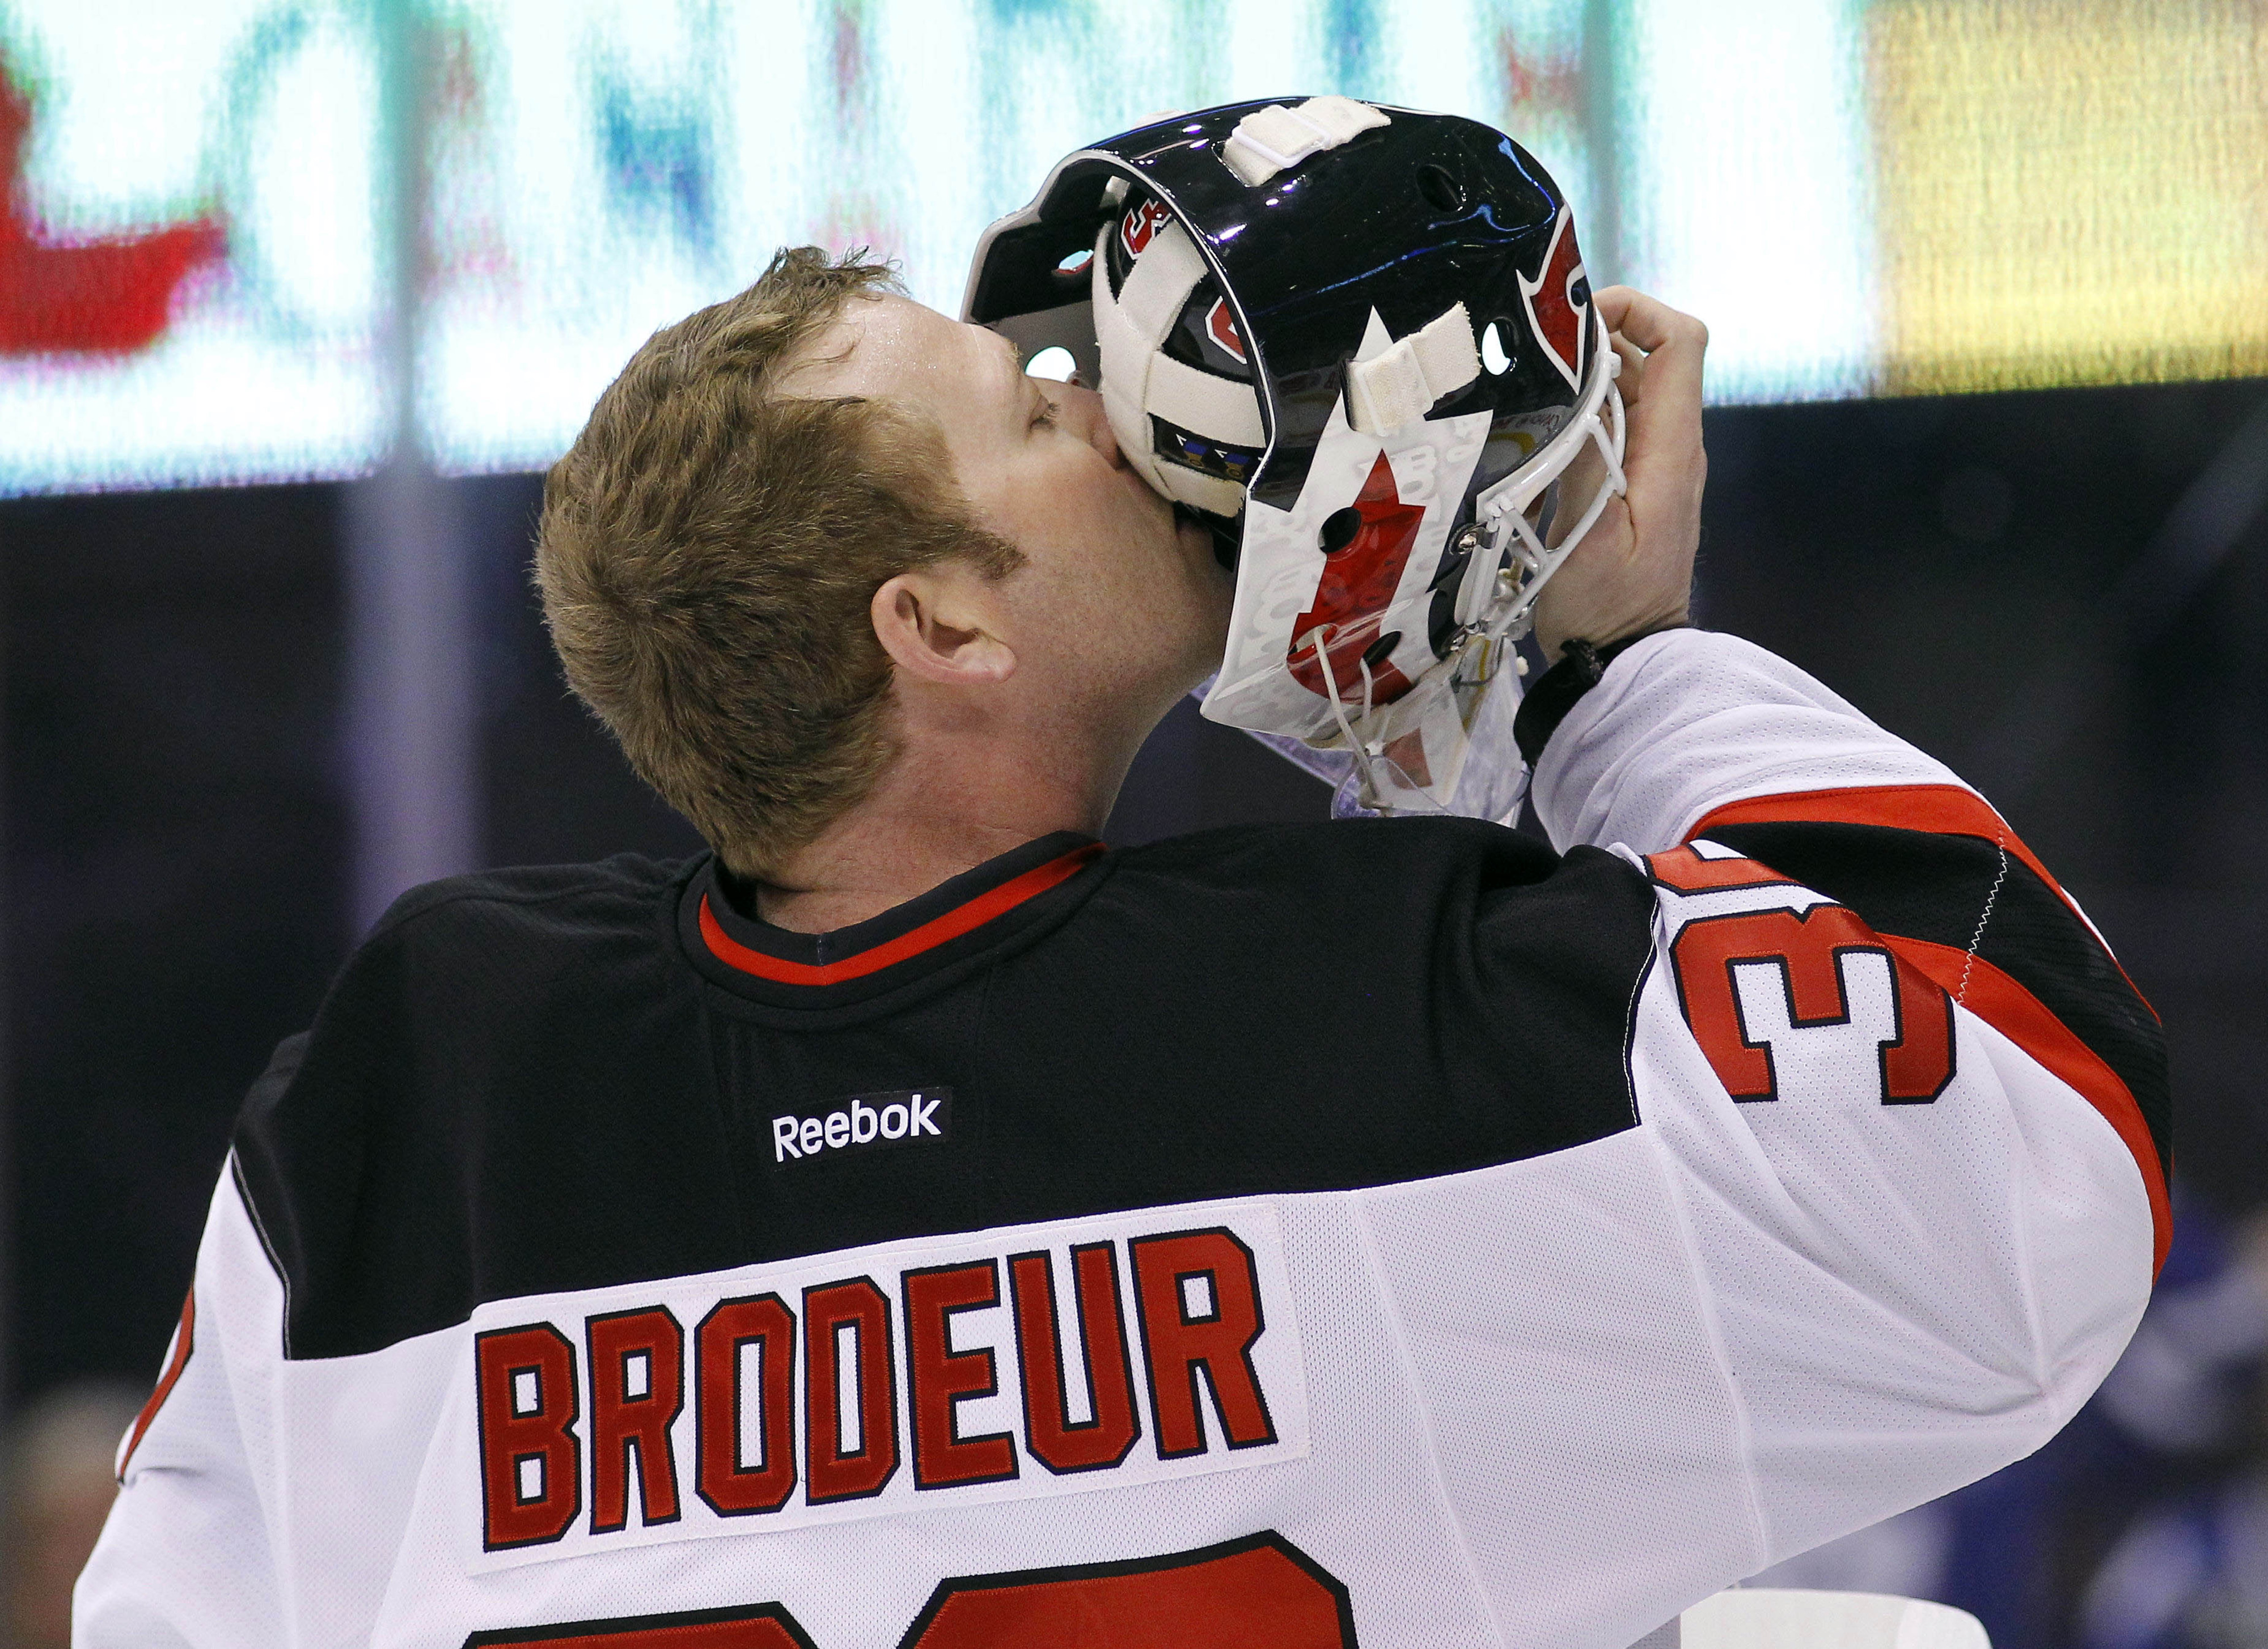 Martin Brodeur won't be kissing the mask on the NHL 14 cover should he win, but it's still a good photo anyway.